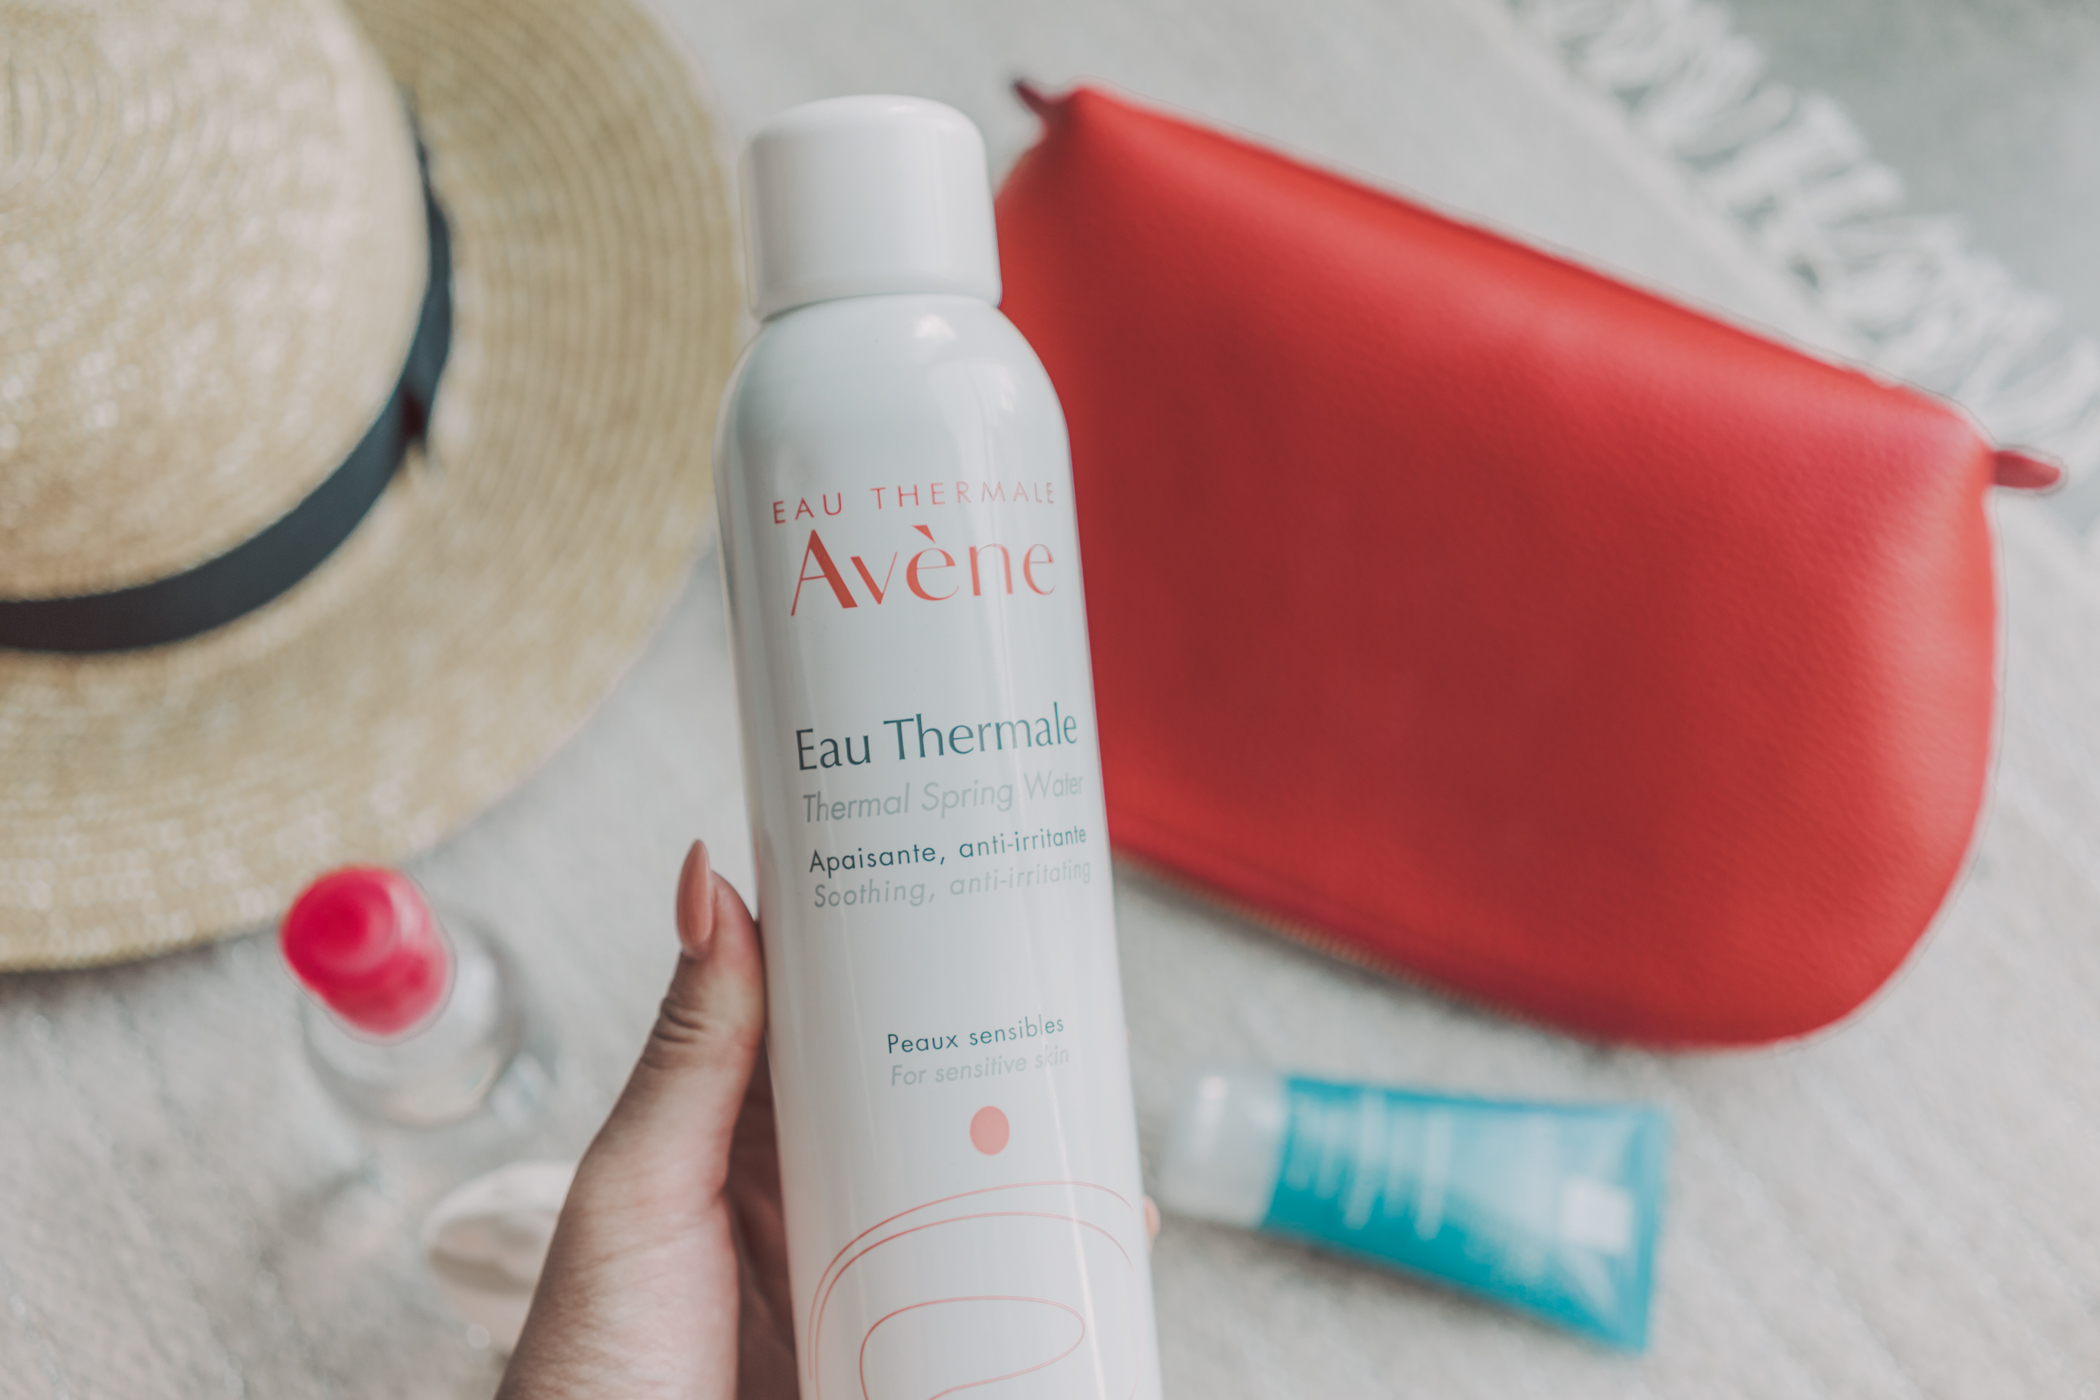 Avene Eau Thermale Water Spray